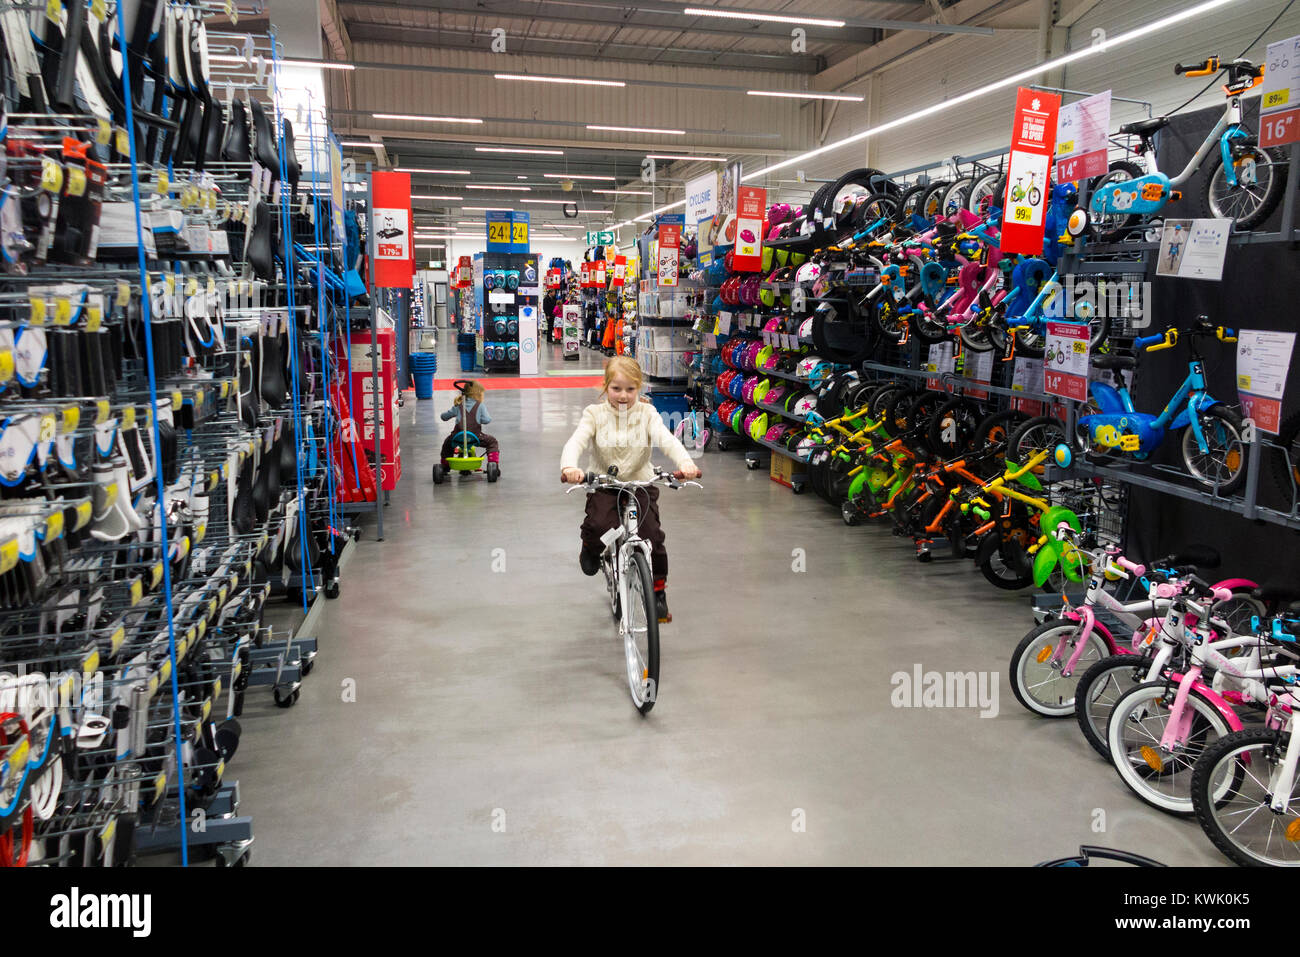 0c3ace1eae Children ride new bikes on sale in Decathlon store   shop   sports equipment  retailer in France   French superstore at Grésy-sur-Aix. France. (93)